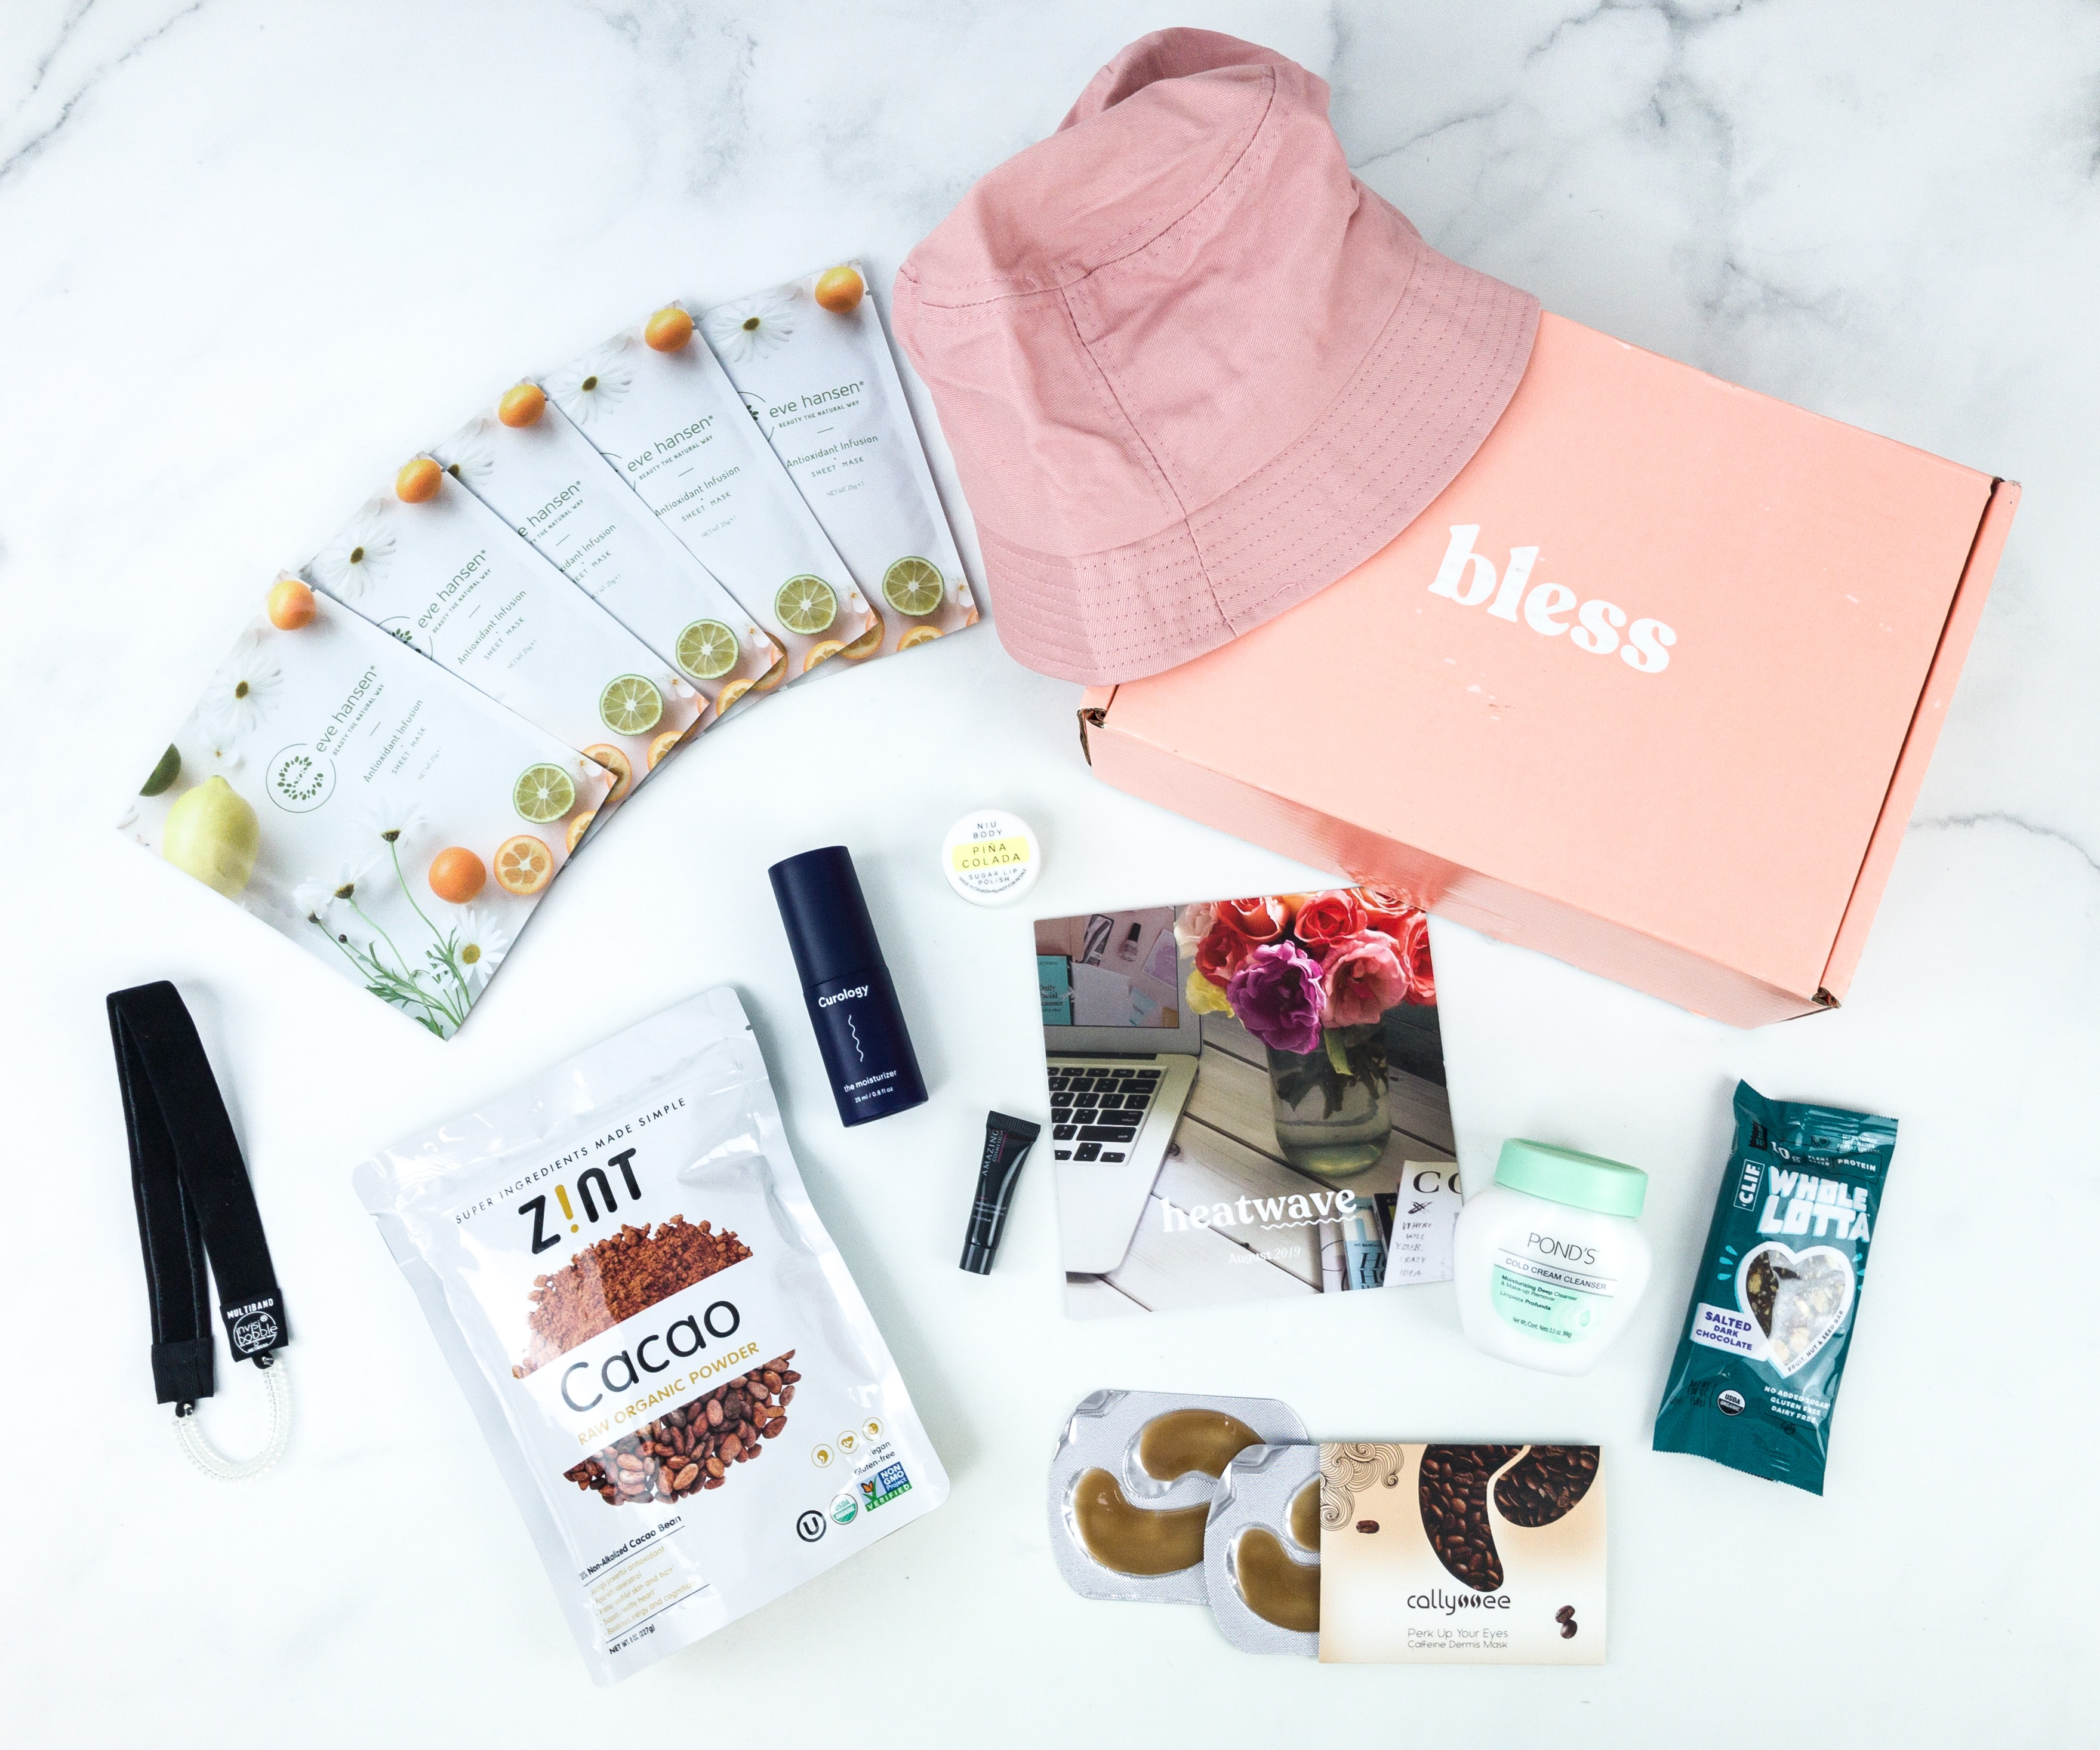 Bless Box August 2019 Subscription Box Review & Coupon